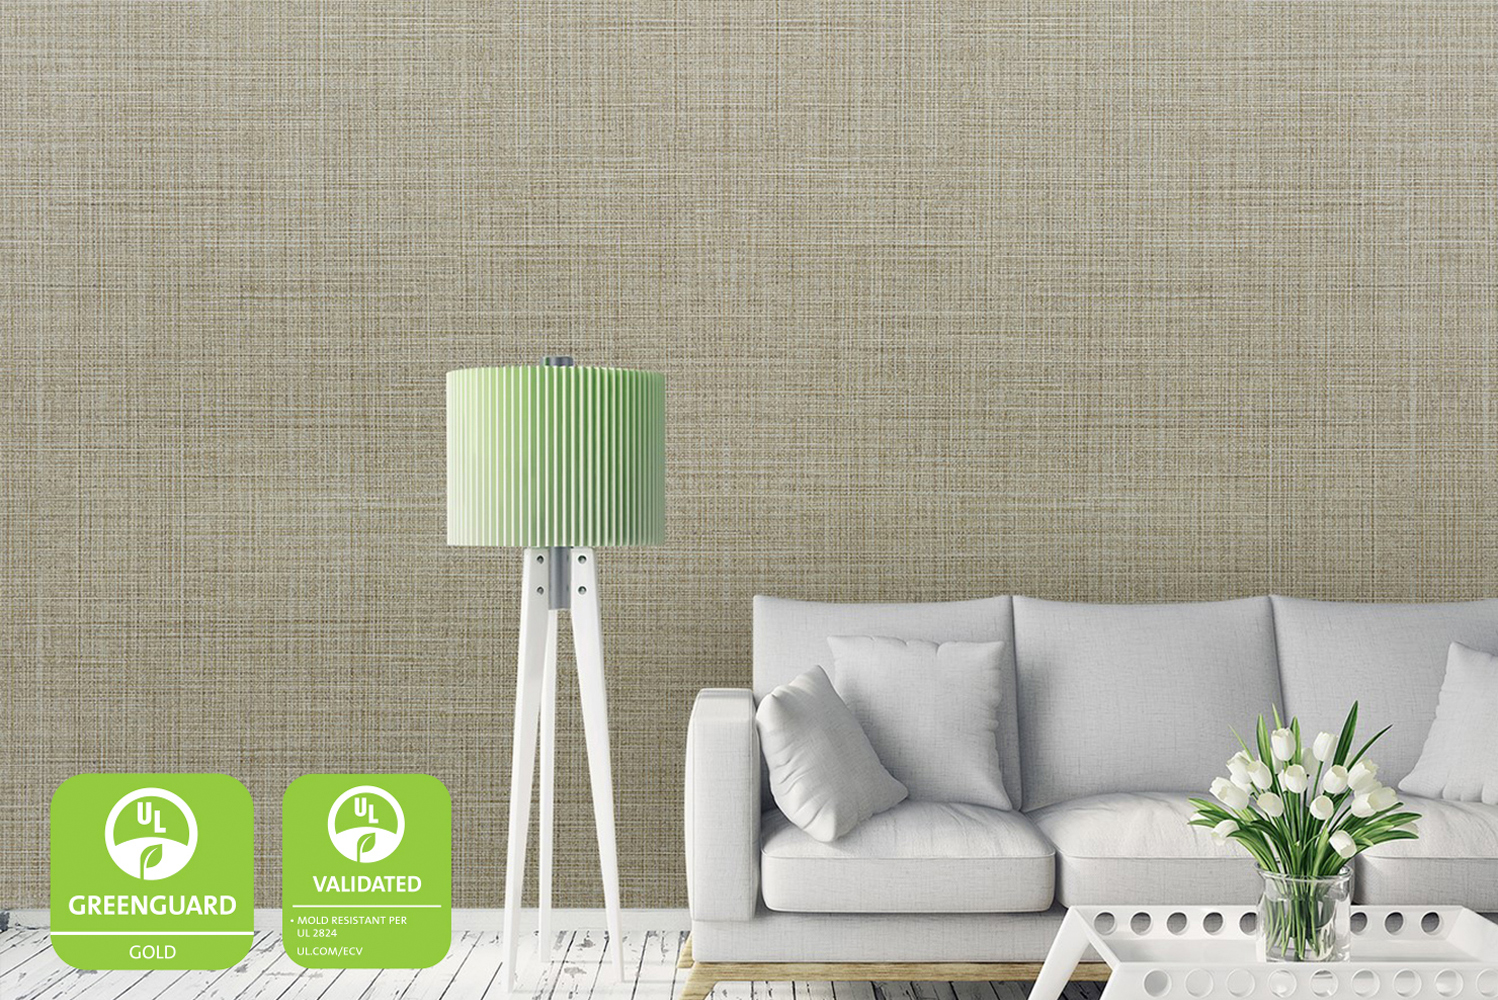 DuPont Tedlar wallcoverings were screened for more than 10,000 VOCs and undergoes both annual recertification and periodic testing to maintain this credential.